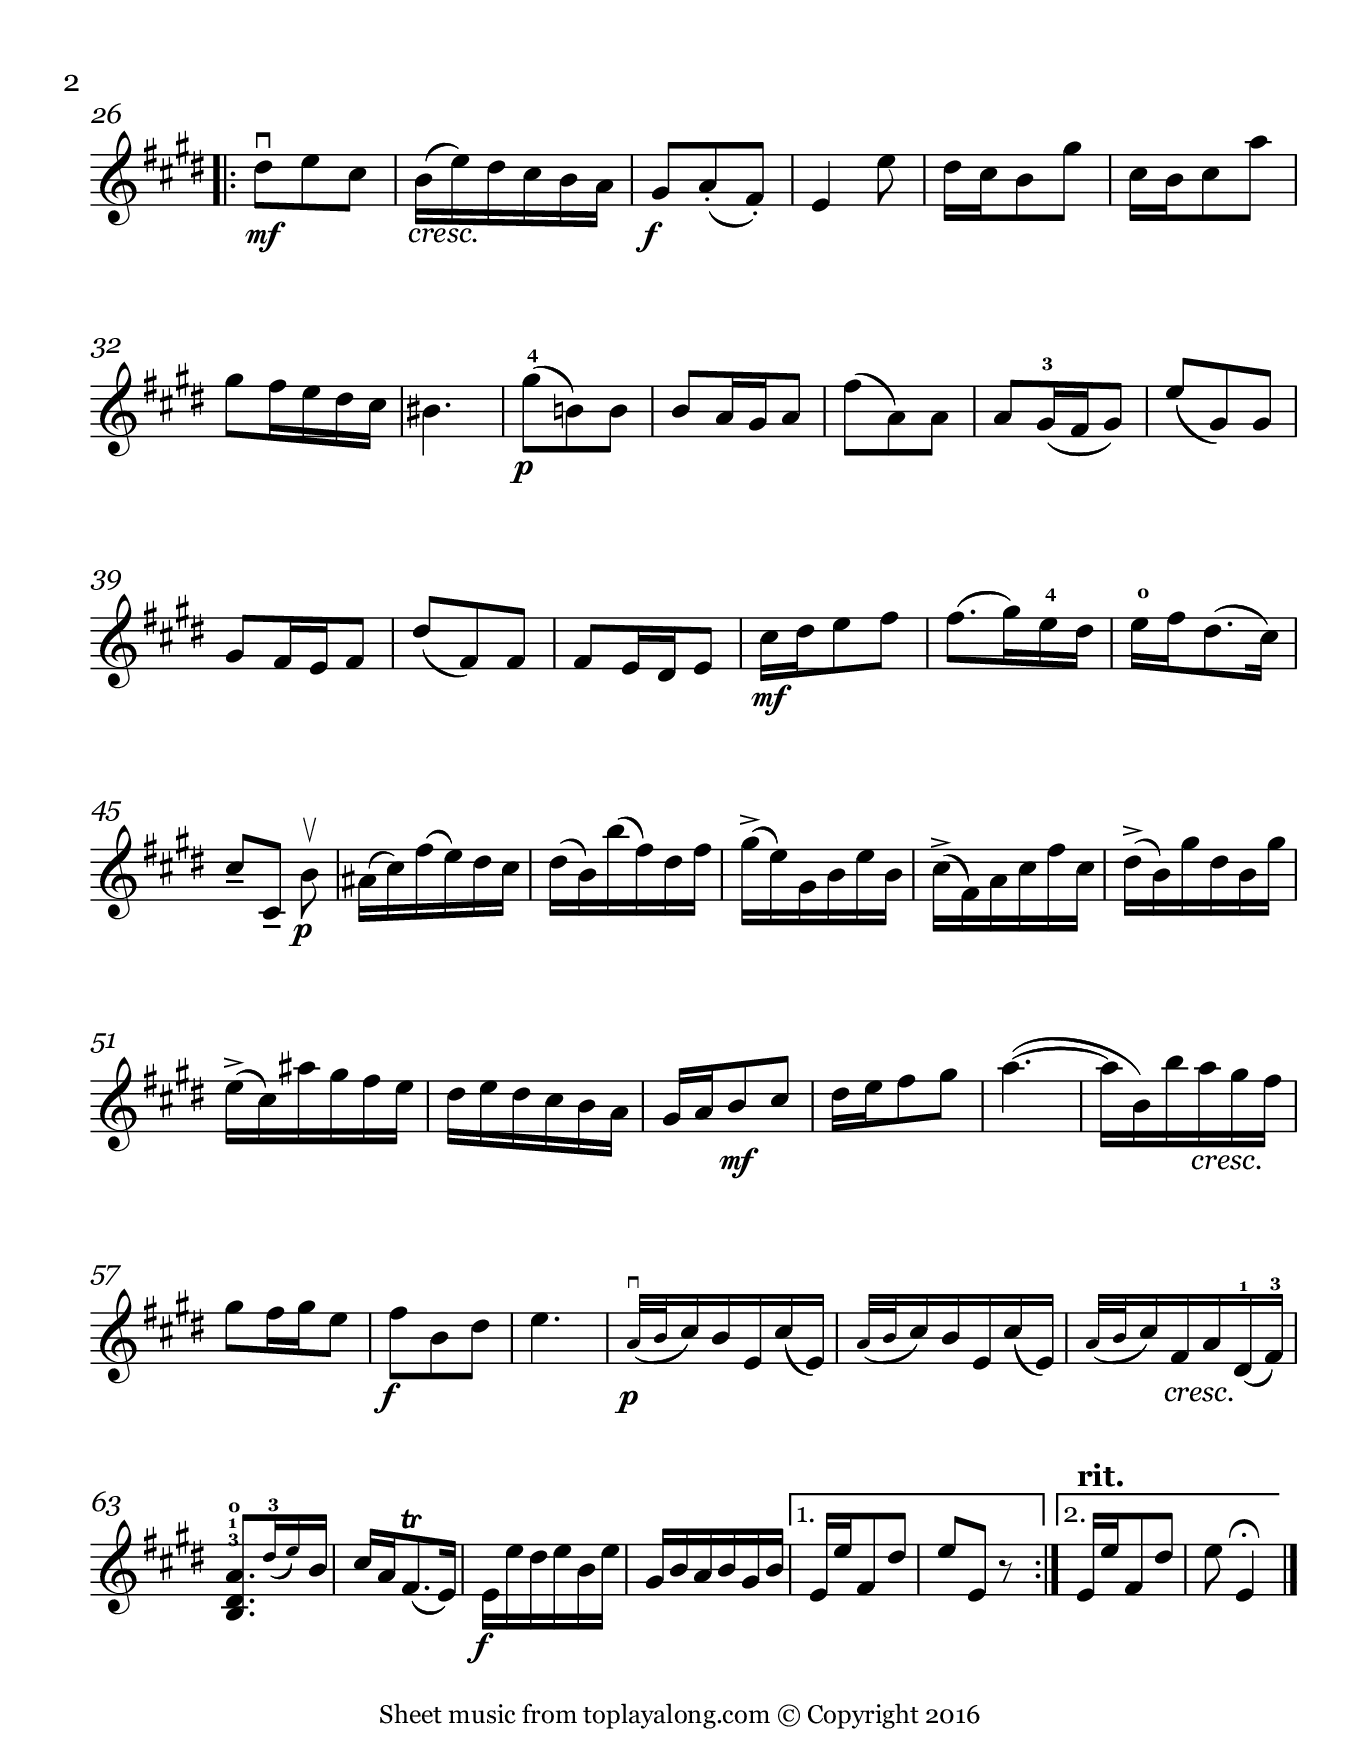 Violin Sonata Op. 1 No. 15 (IV. Allegro) by Handel. Sheet music for Violin, page 2.